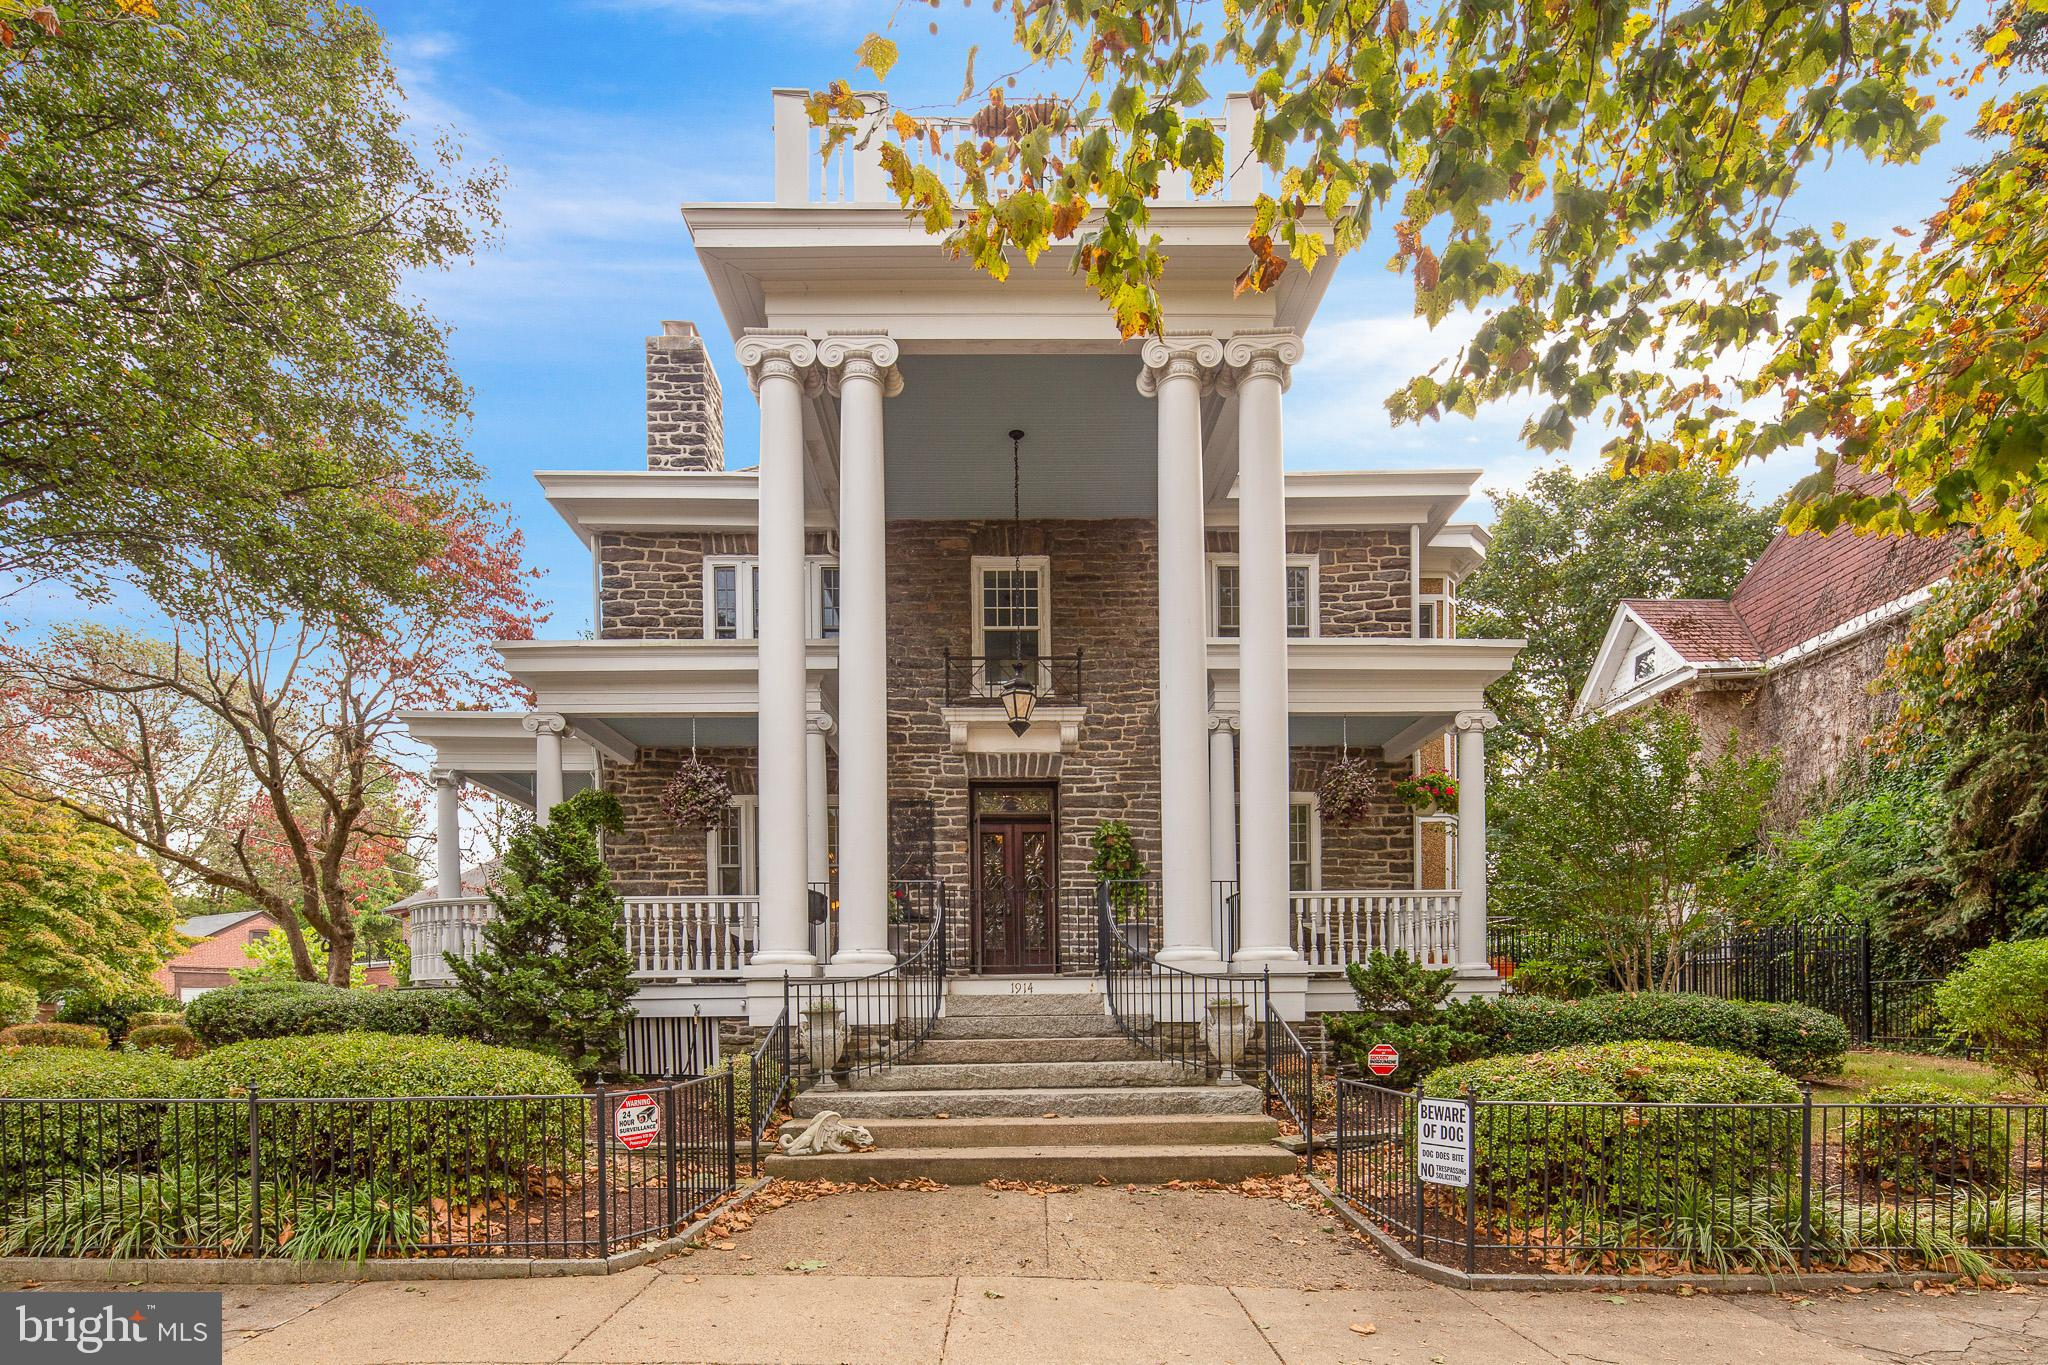 Don't miss this opportunity to own the historic 'Topkis' home built in 1900 on 'The Boulevard' later renamed Baynard Boulevard in 1925 after its chief developer, Samuel H. Baynard. Many of those grand homes have since been torn down but 1914 Baynard Boulevard, the second home to be built on The Boulevard, endures as a stone and mortar testament to Mr. Baynard's vision for a new, prestigious neighborhood. This magnificent home is easily identified by the massive columns, multiple decks, and a wrap around porch enclosed with a wrought iron gate.  The timeless grandeur and elegance found in such a historic home is apparent from the moment you cross the threshold through the custom front doors and matching transom. Enter into the foyer and appreciate the grand living room with a welcoming fireplace, crown molding, and gracious lighting fixtures.  Through the French doors on the opposite side of the foyer is a charming music room with abundant light which could easily be used as a home office or formal sitting room and includes a small deck off the side door.  With a three-window bay, the elegant dining room offers plenty of natural light and leads through French doors into the sunroom with radiant heated tile floors and includes a small sink alongside the powder room. One side of the sunroom opens to a small south-facing deck, ideal for a potted garden area and opposite are the Anderson doors to the covered deck, which is also accessible through the kitchen and leads to the professionally landscaped backyard, complete with a large gazebo, custom hardscaping and stone seating wall and an abundance of yard space.   Between the dining room and the kitchen is a charming butler's pantry with glass front cabinets, a wet bar, and a bonus dishwasher along with a pantry providing plenty of storage. The kitchen boasts commercial grade stainless steel appliances including a six-burner Dacor range with custom hood, and a double door Subzero refrigerator as well as recessed lighting